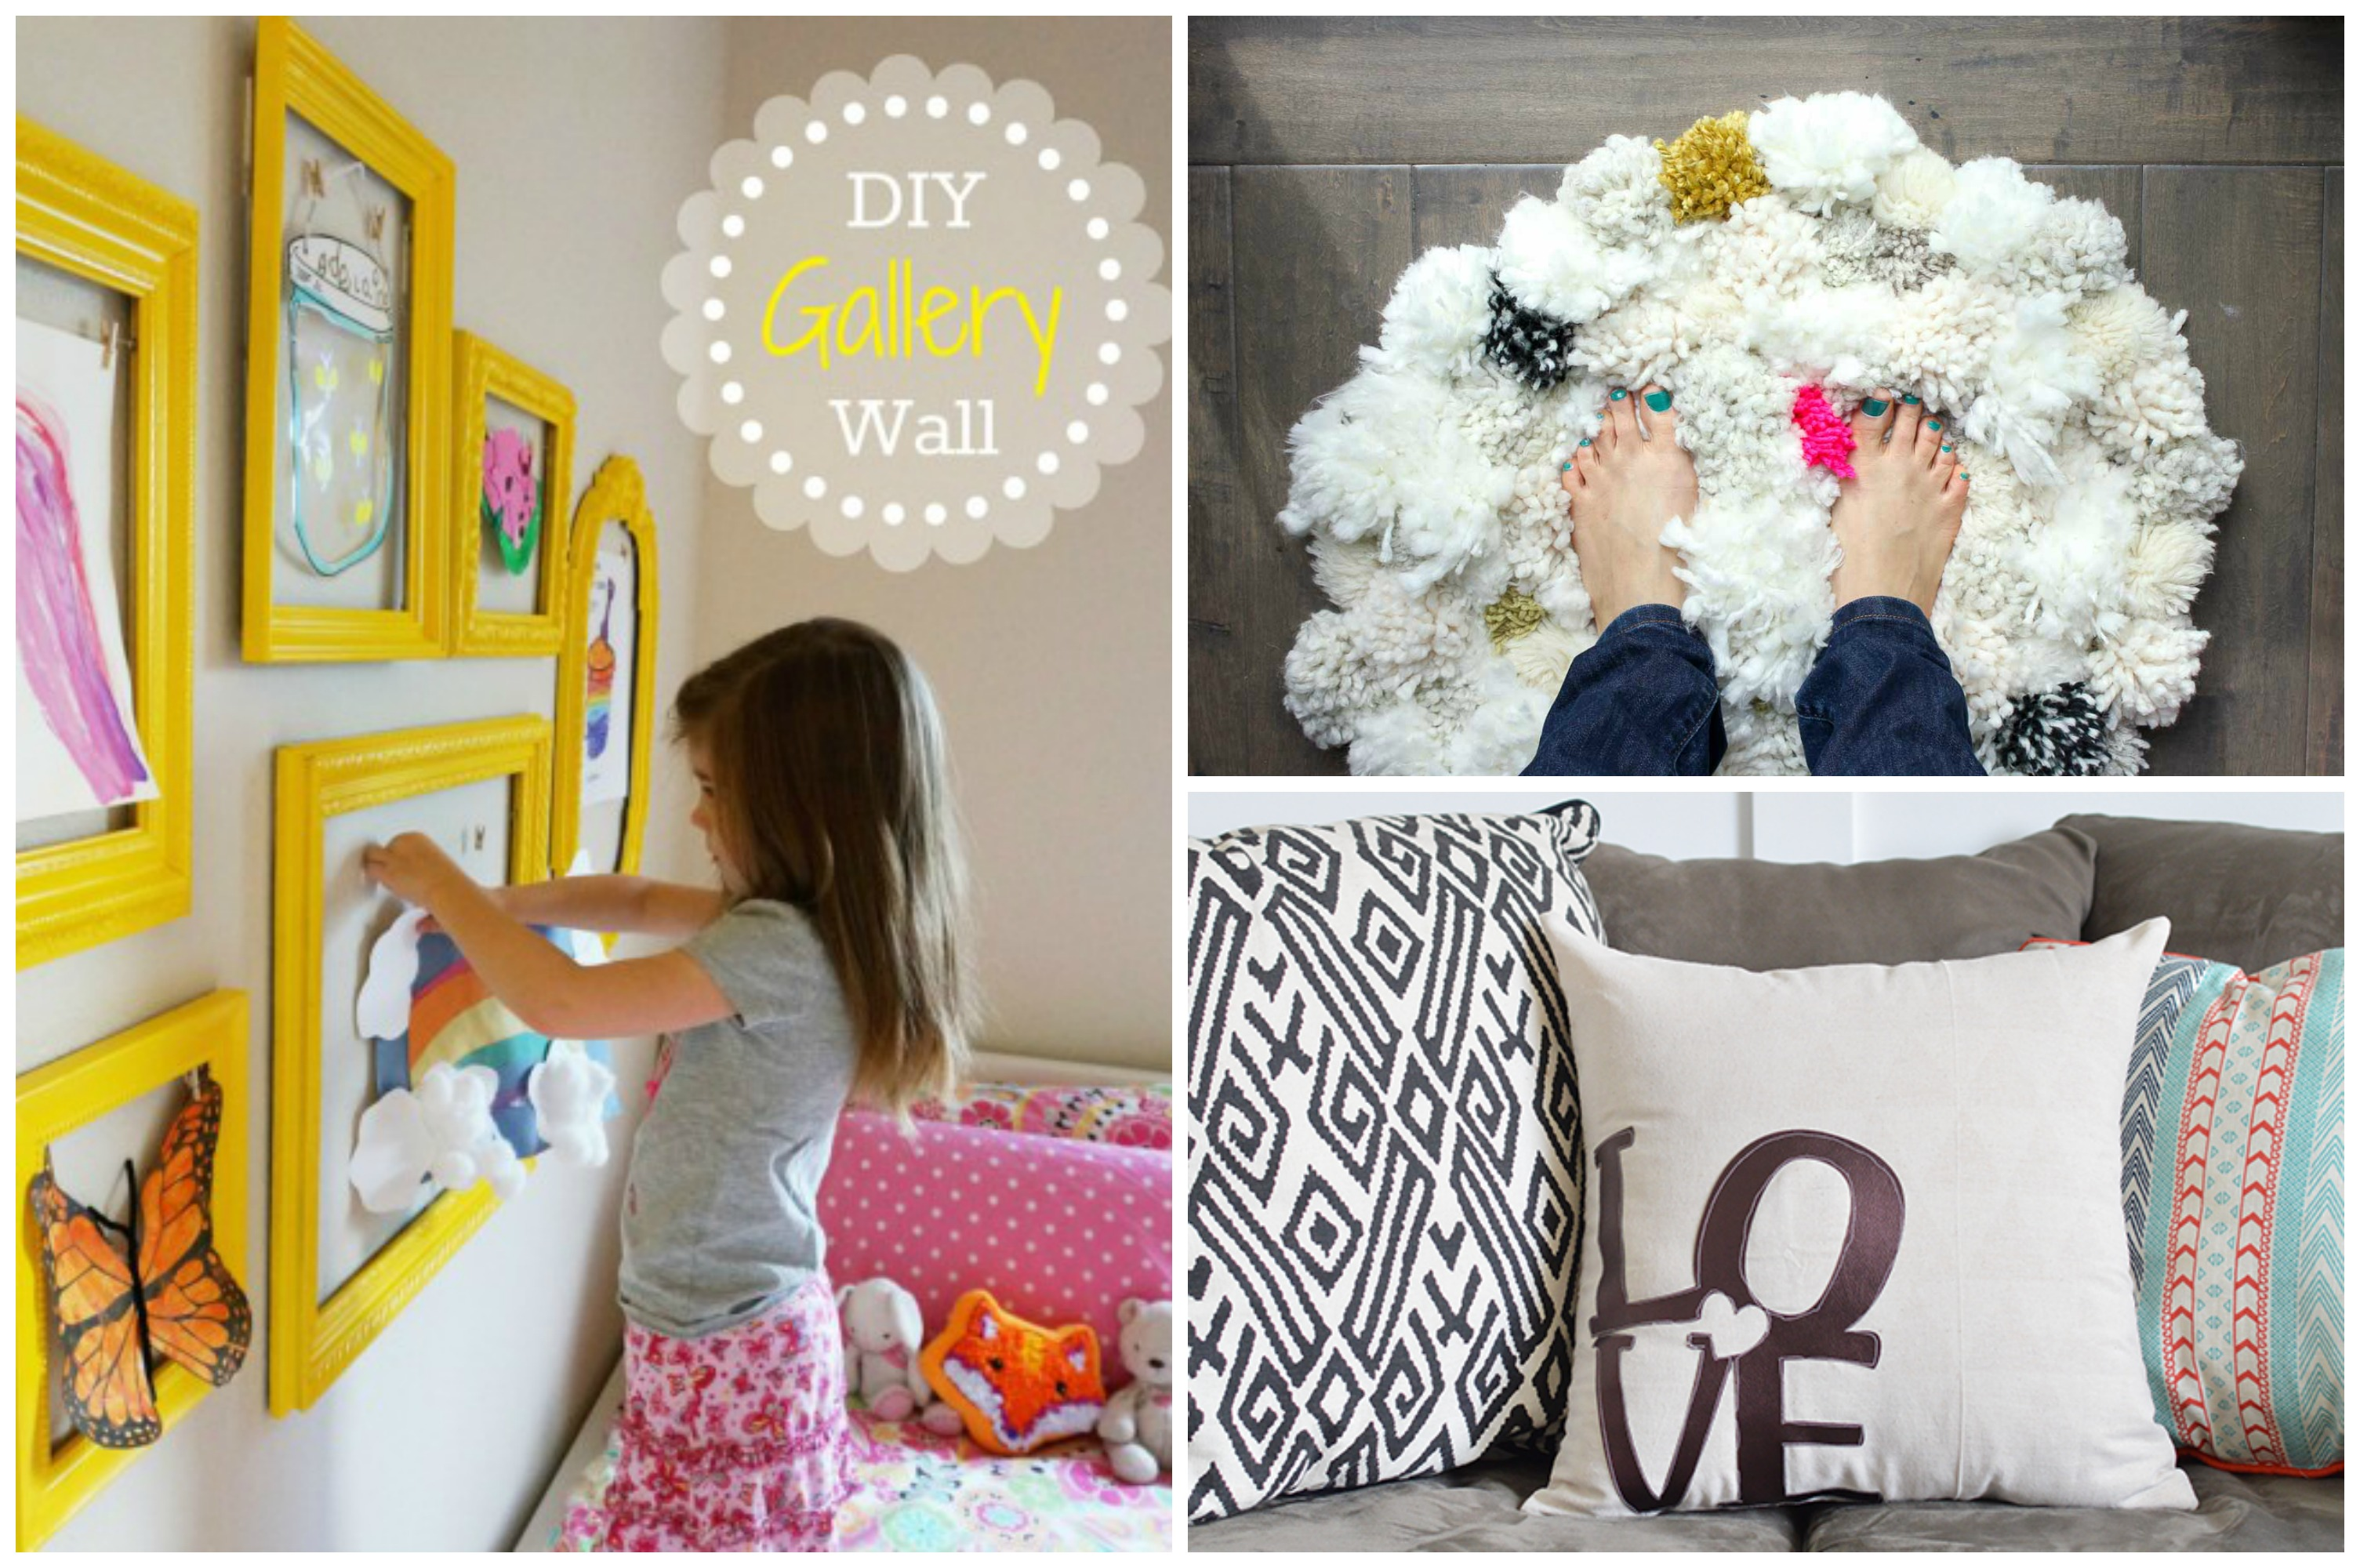 12 cheap and easy diy ideas for your bedroom kisses for for Cheap diy projects for bedroom